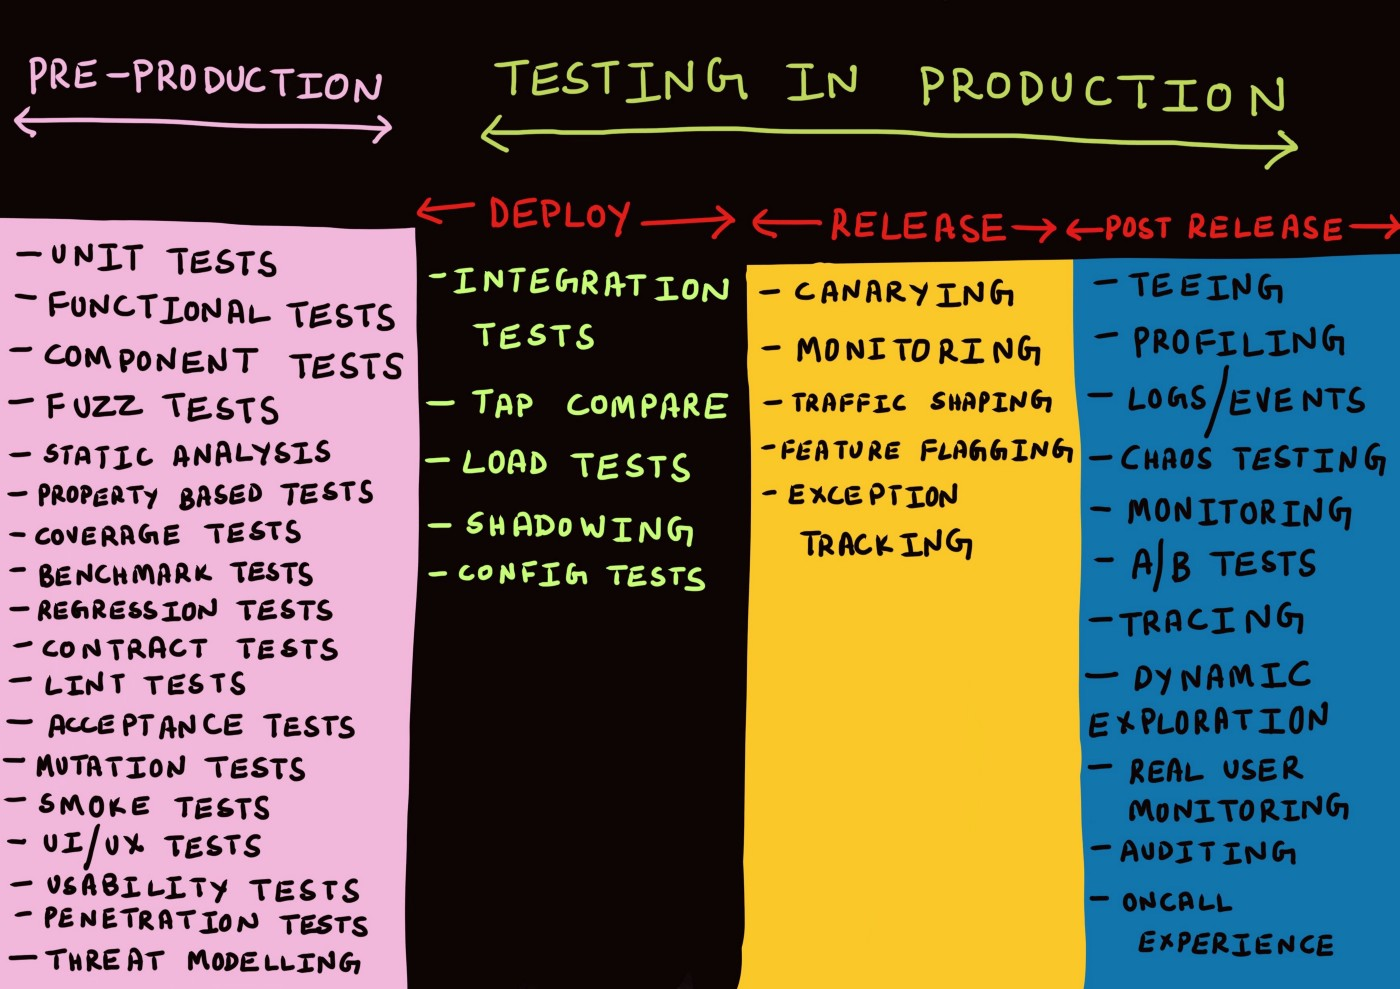 Testing in Production, the safe way - Cindy Sridharan - Medium